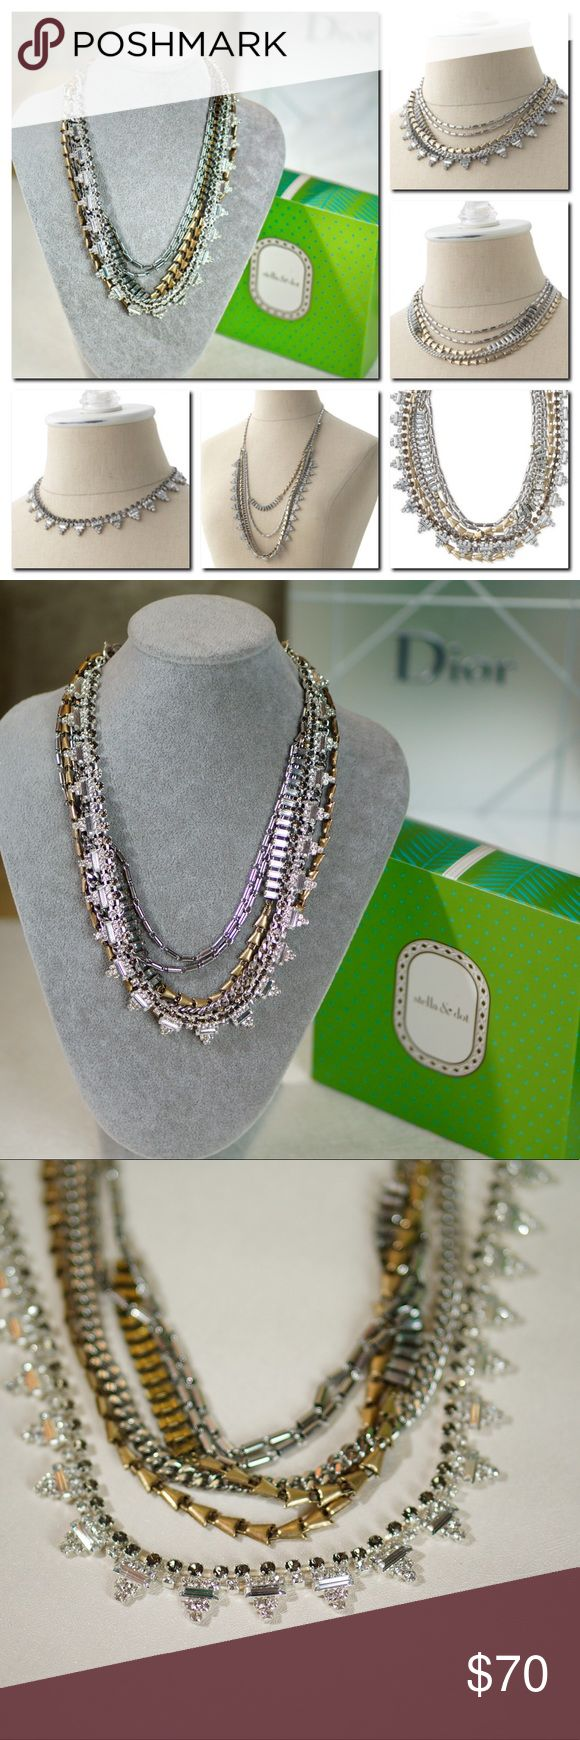 """Stella Dot Sutton Statement Necklace Mixed Metal Brand new. Can be worn it 5 ways!  Our most versatile fashion necklace yet! Five (count 'em) ways to wear our Sutton statement necklace: Long and loose for a laid-back look. Clasped into a statement when you're feeling bold. Plus or minus the sparkle strand. Or just the sparkle when you're in the mood to shine. * 17.75"""" when worn short, and 32"""" when worn long. * Mixed metal plating. Stella & Dot Jewelry Necklaces"""